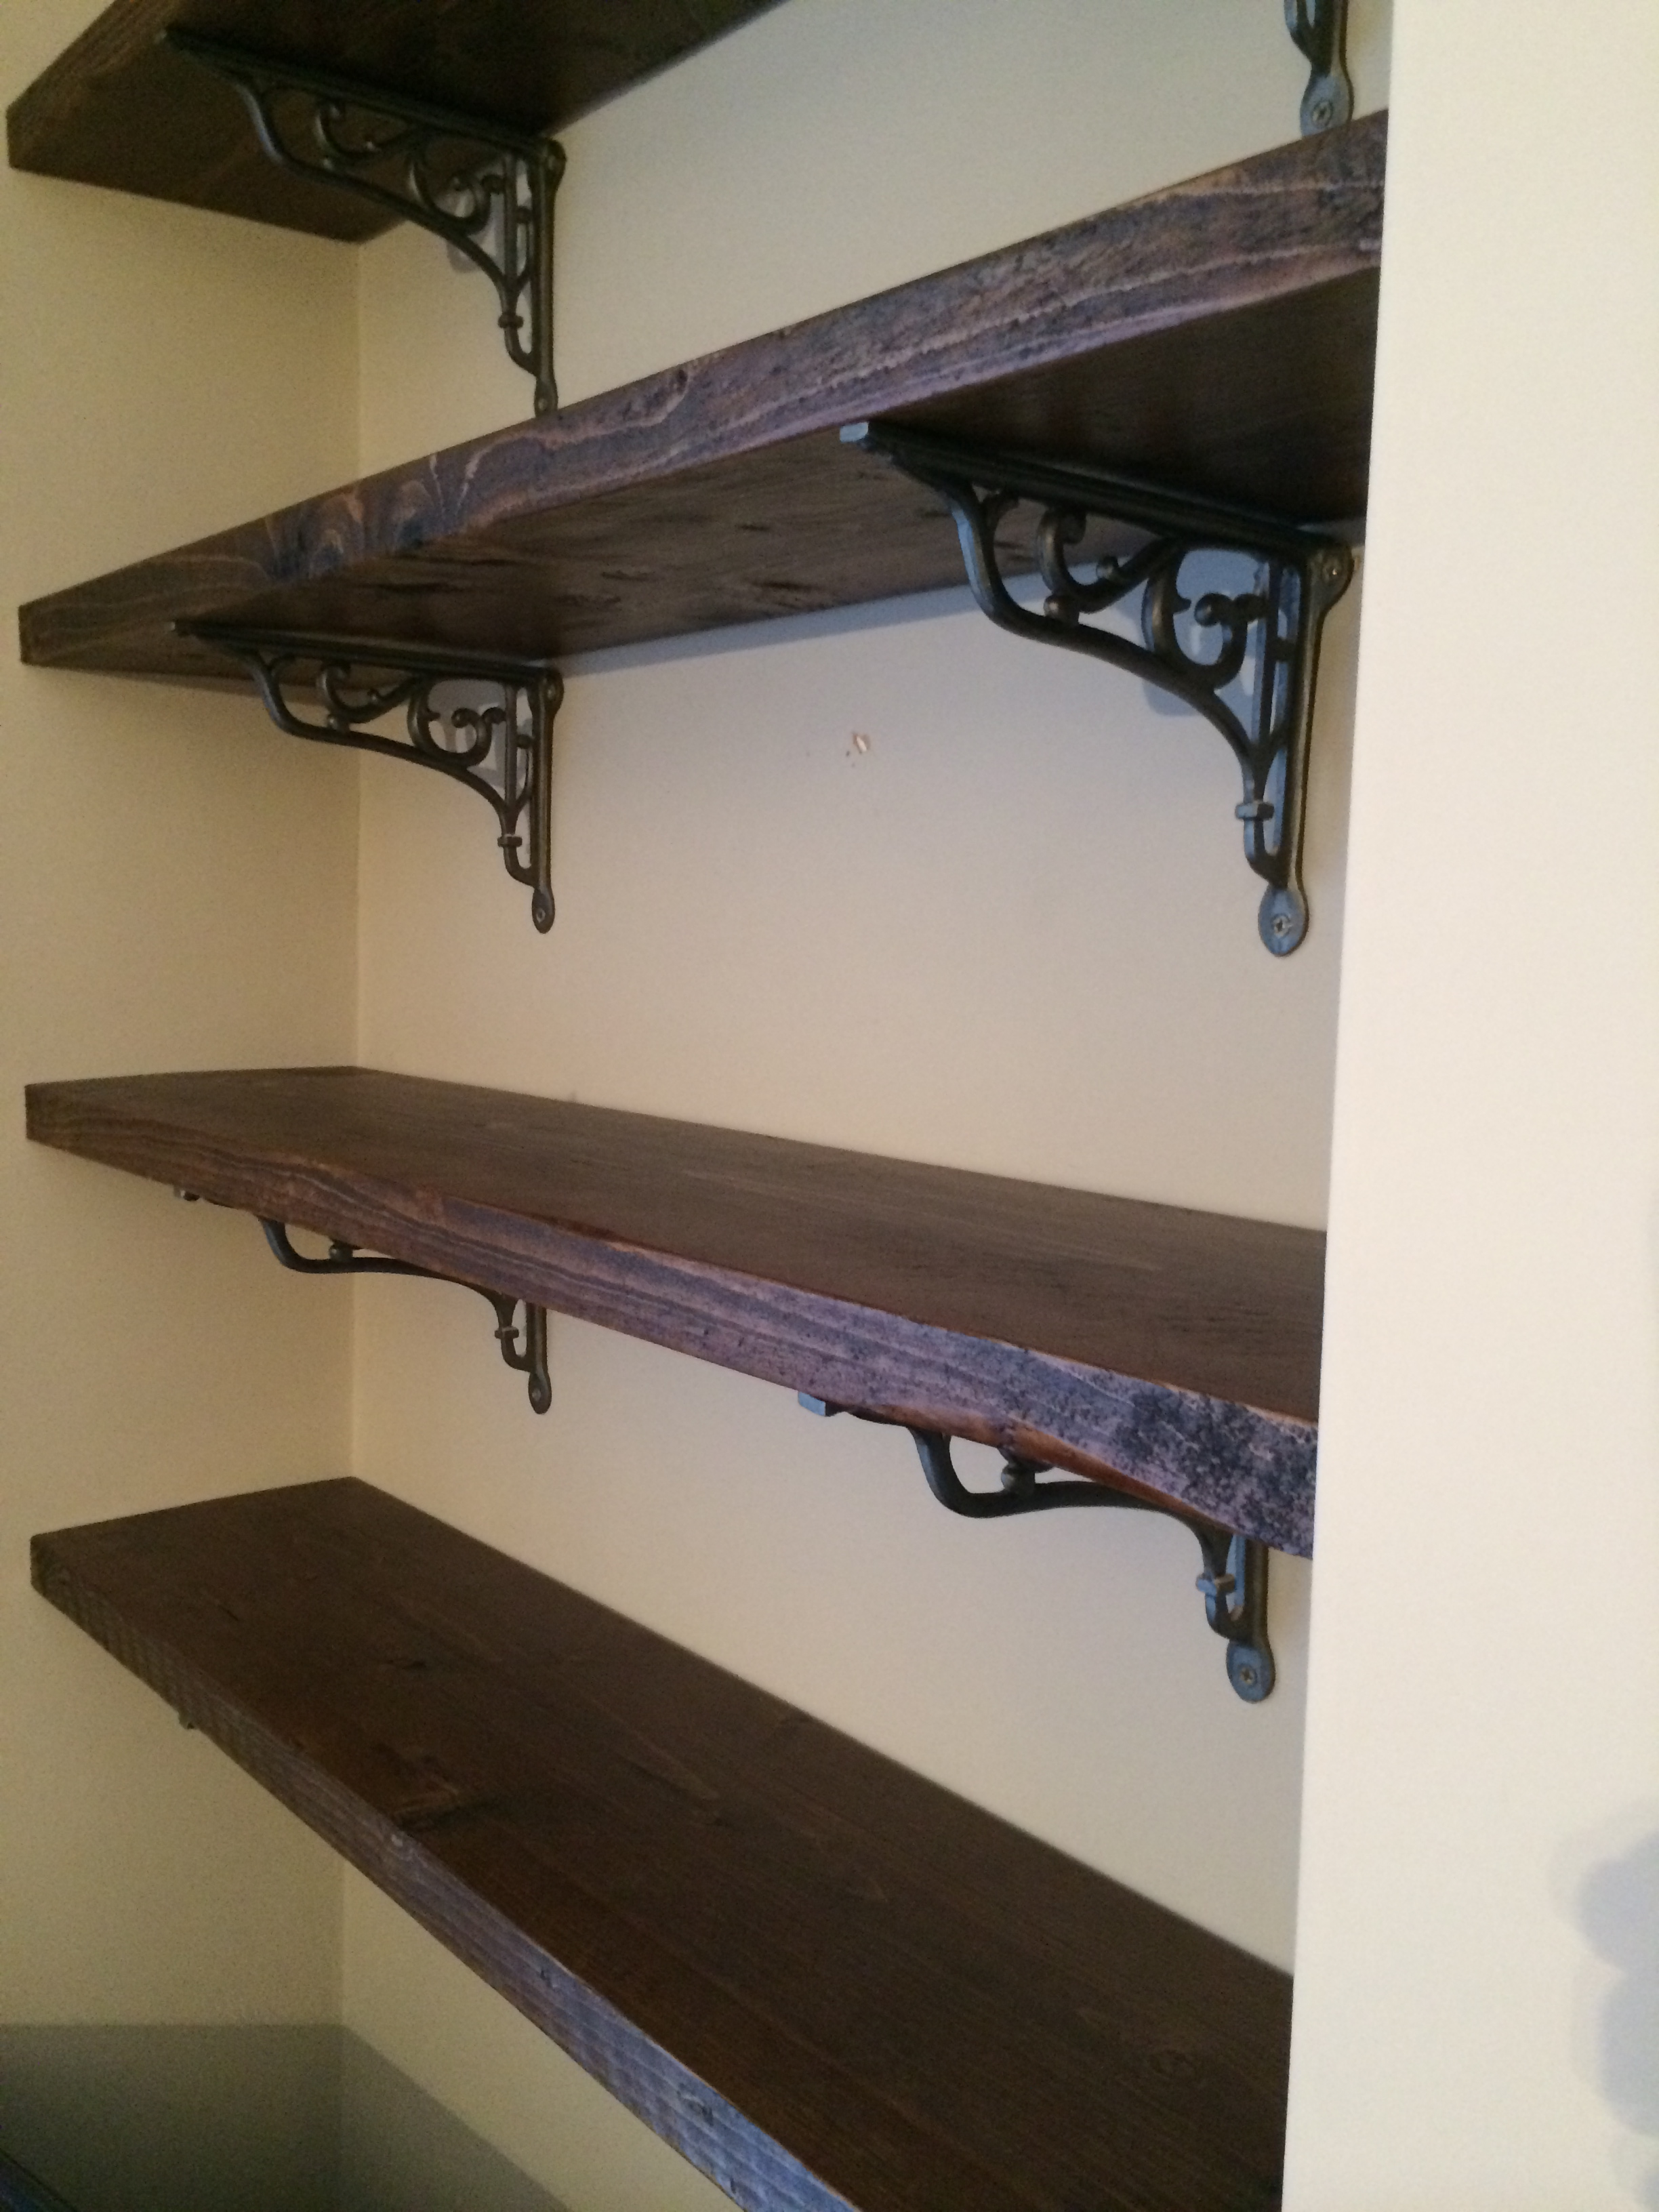 Rustic Shelves - Made from rustic grade pine, these shelves were stained and oiled to a durable finish.